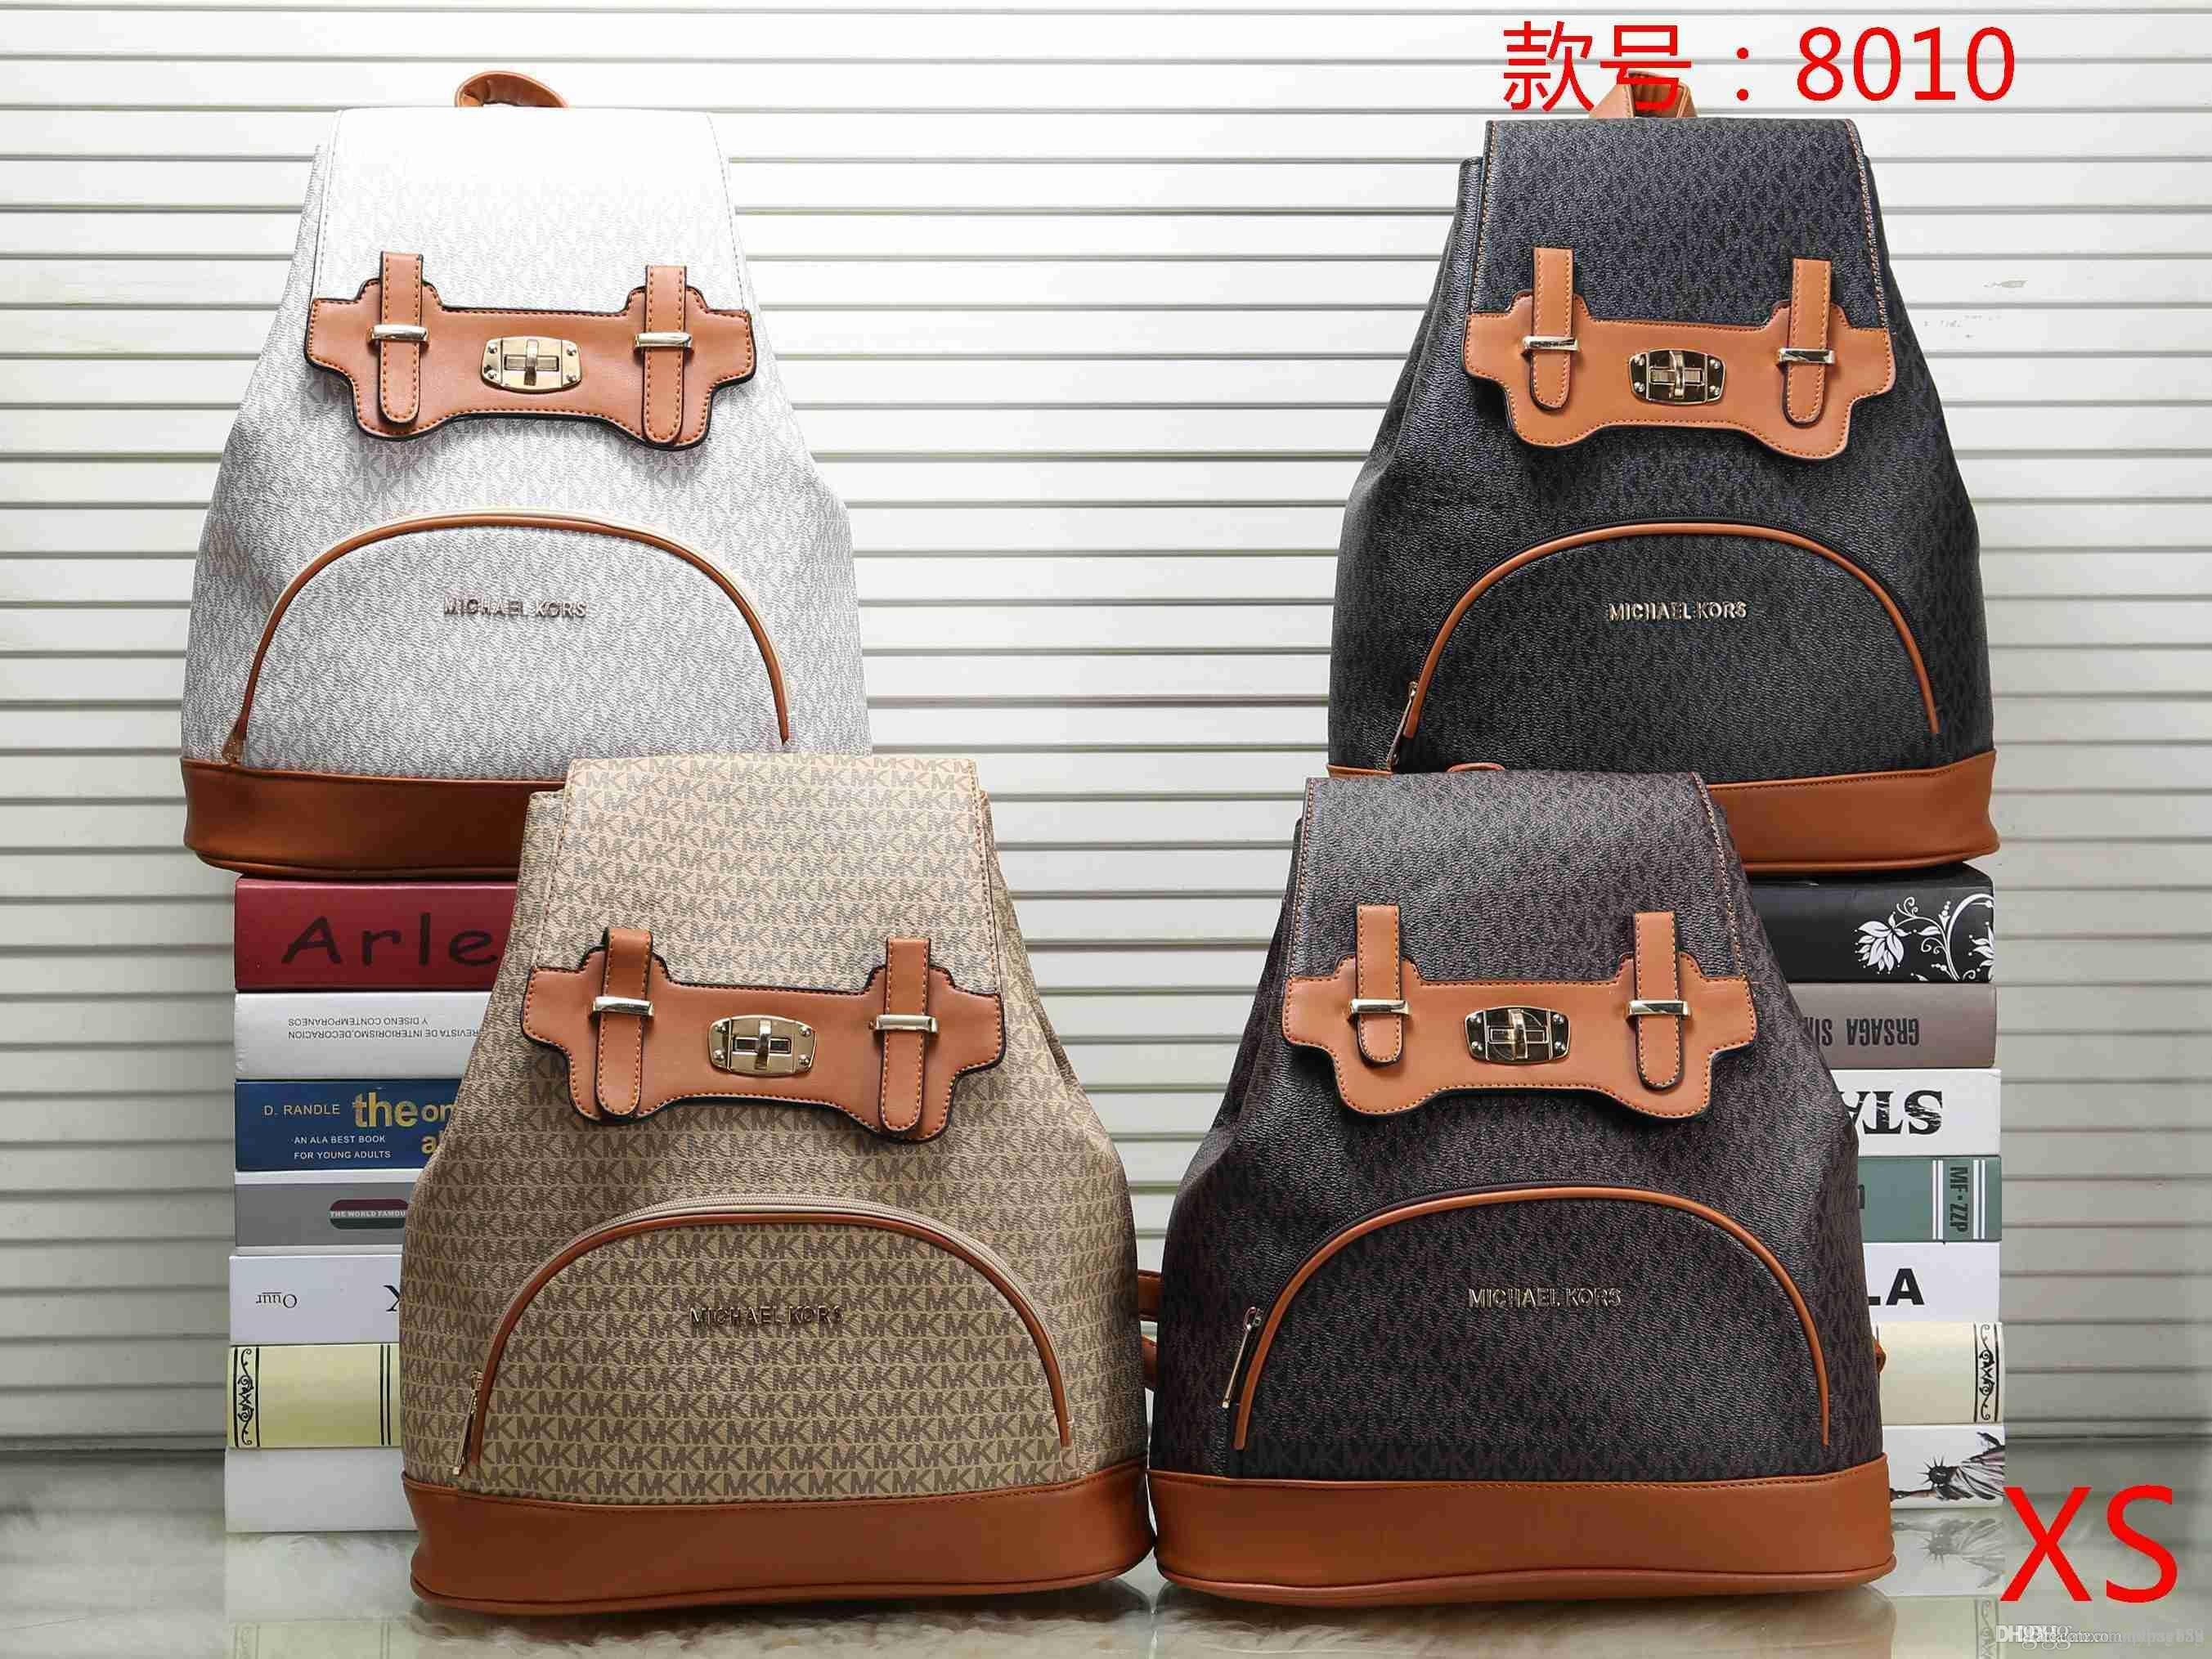 RRR 8010 XS Best price High Quality women Ladies Single handbag tote Shoulder backpack bag purse wallet BBBBB8